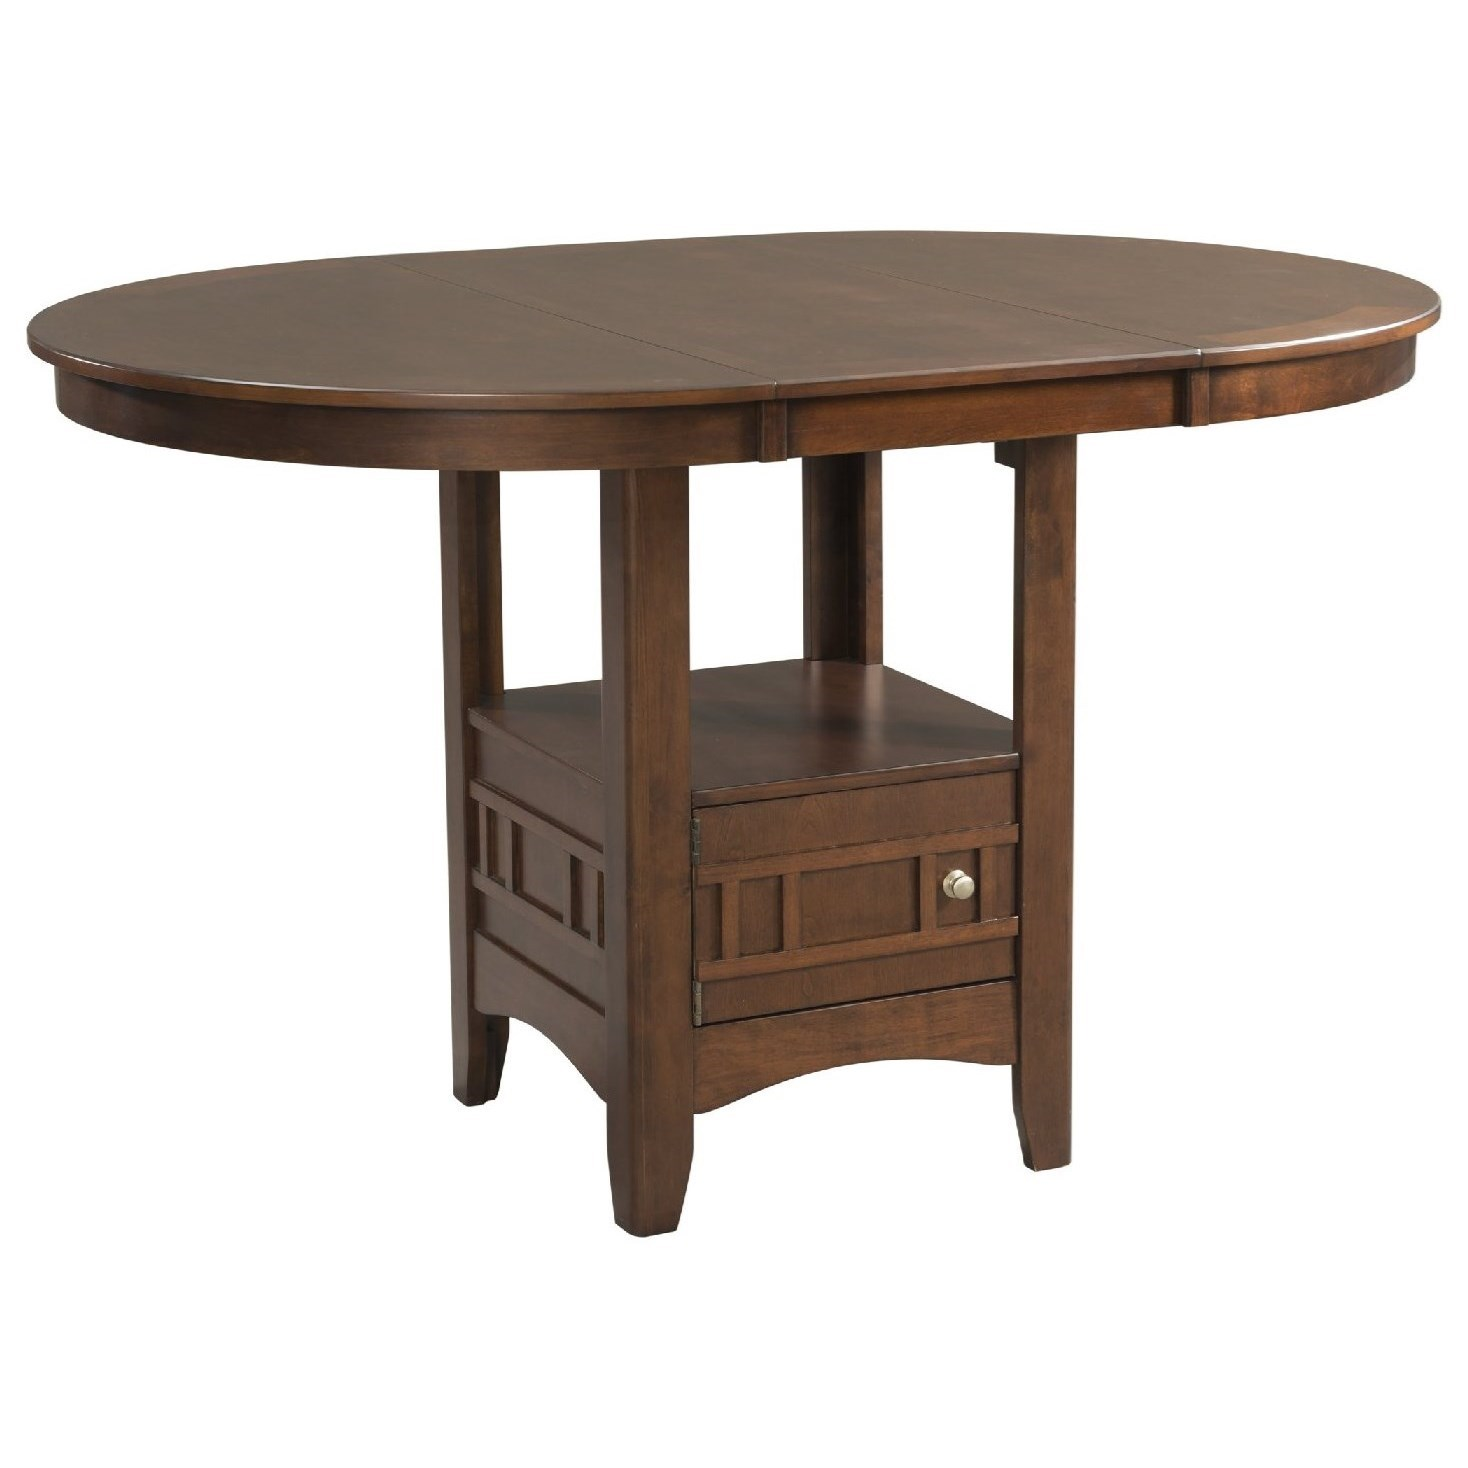 Elements International Max Pub Table with Storage and Leaf